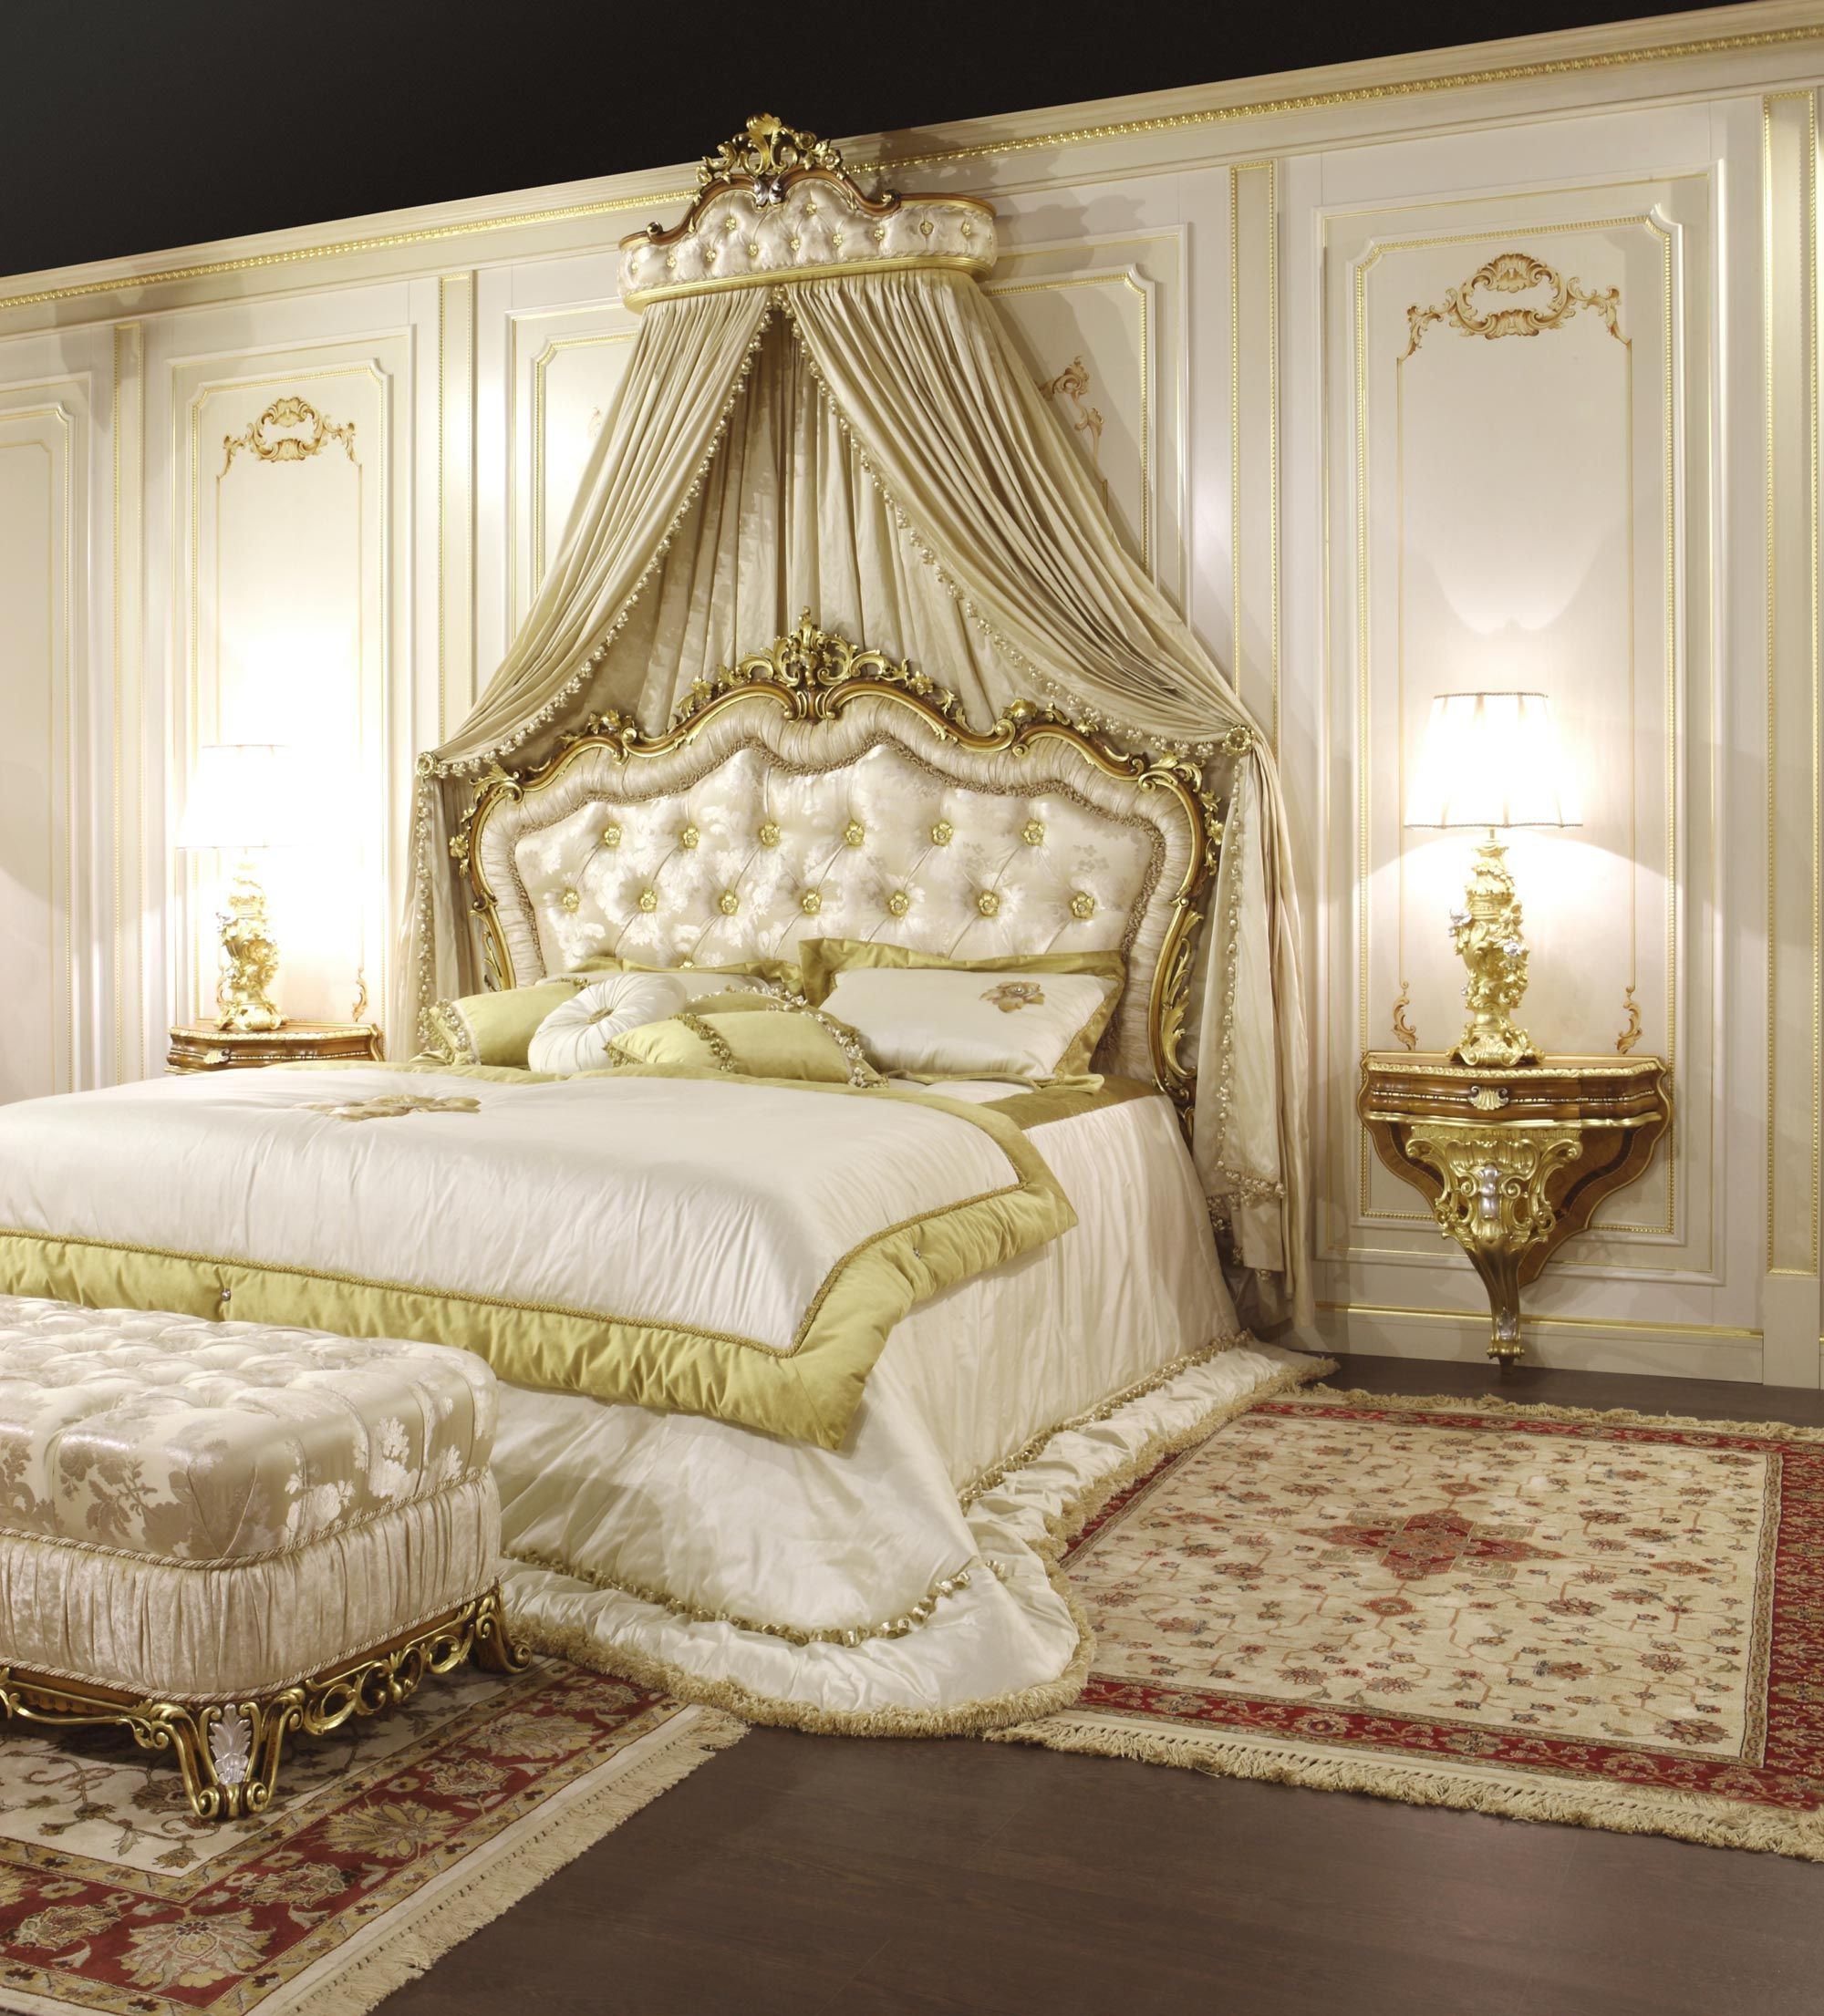 Classic Bed Bedroom Barocco Classic Bedroom Luxurious Bedrooms